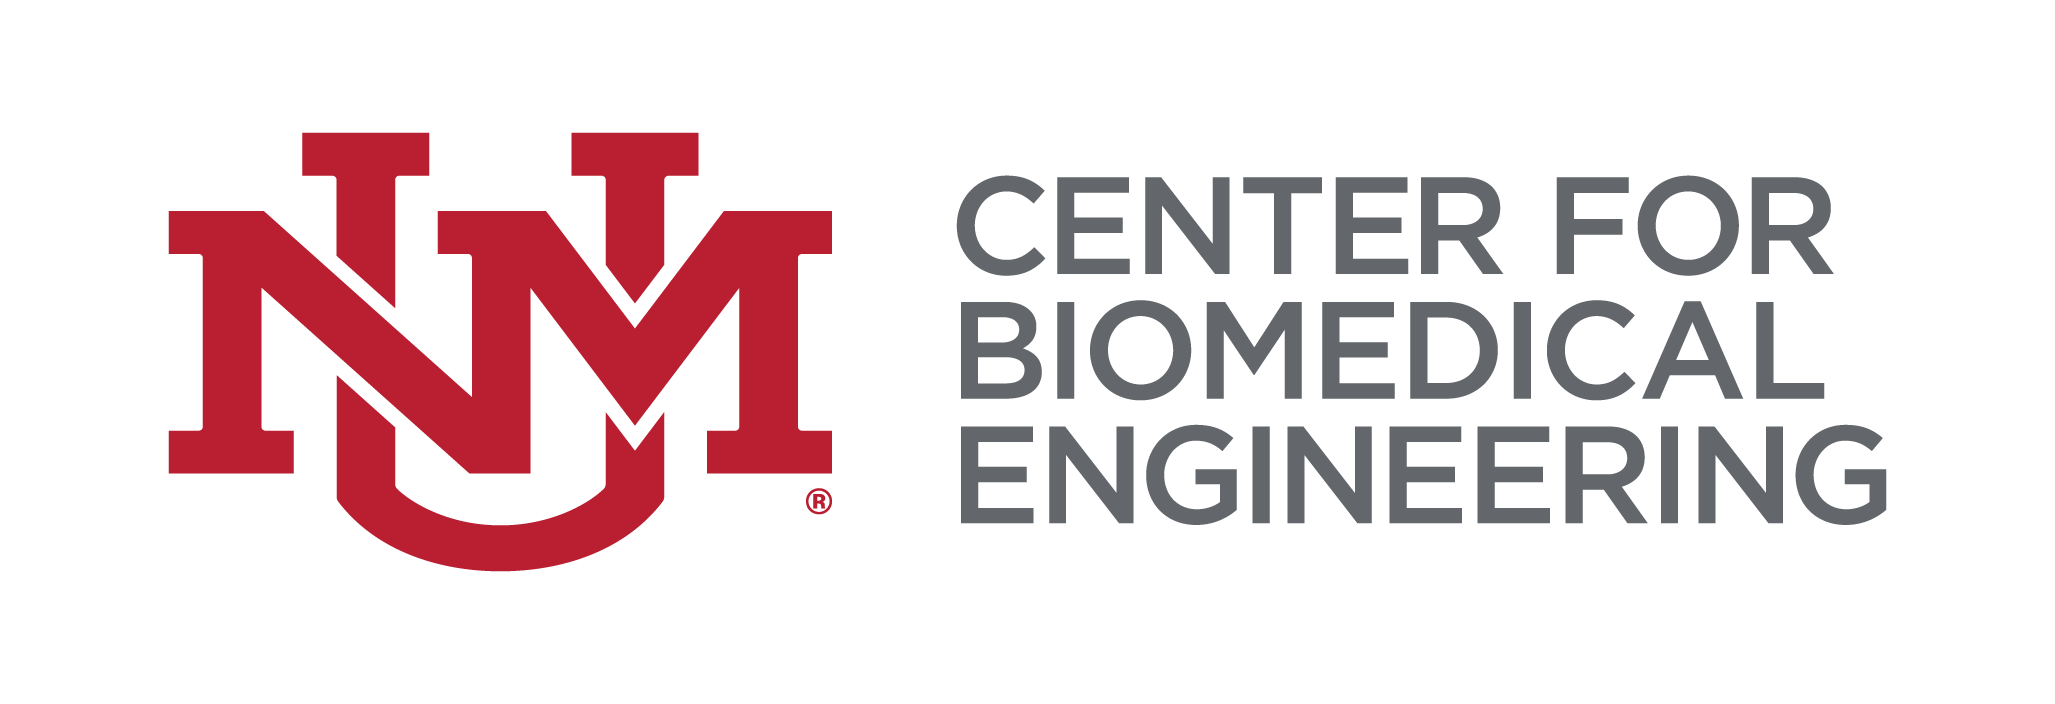 UNM Center for Biomedical Engineering